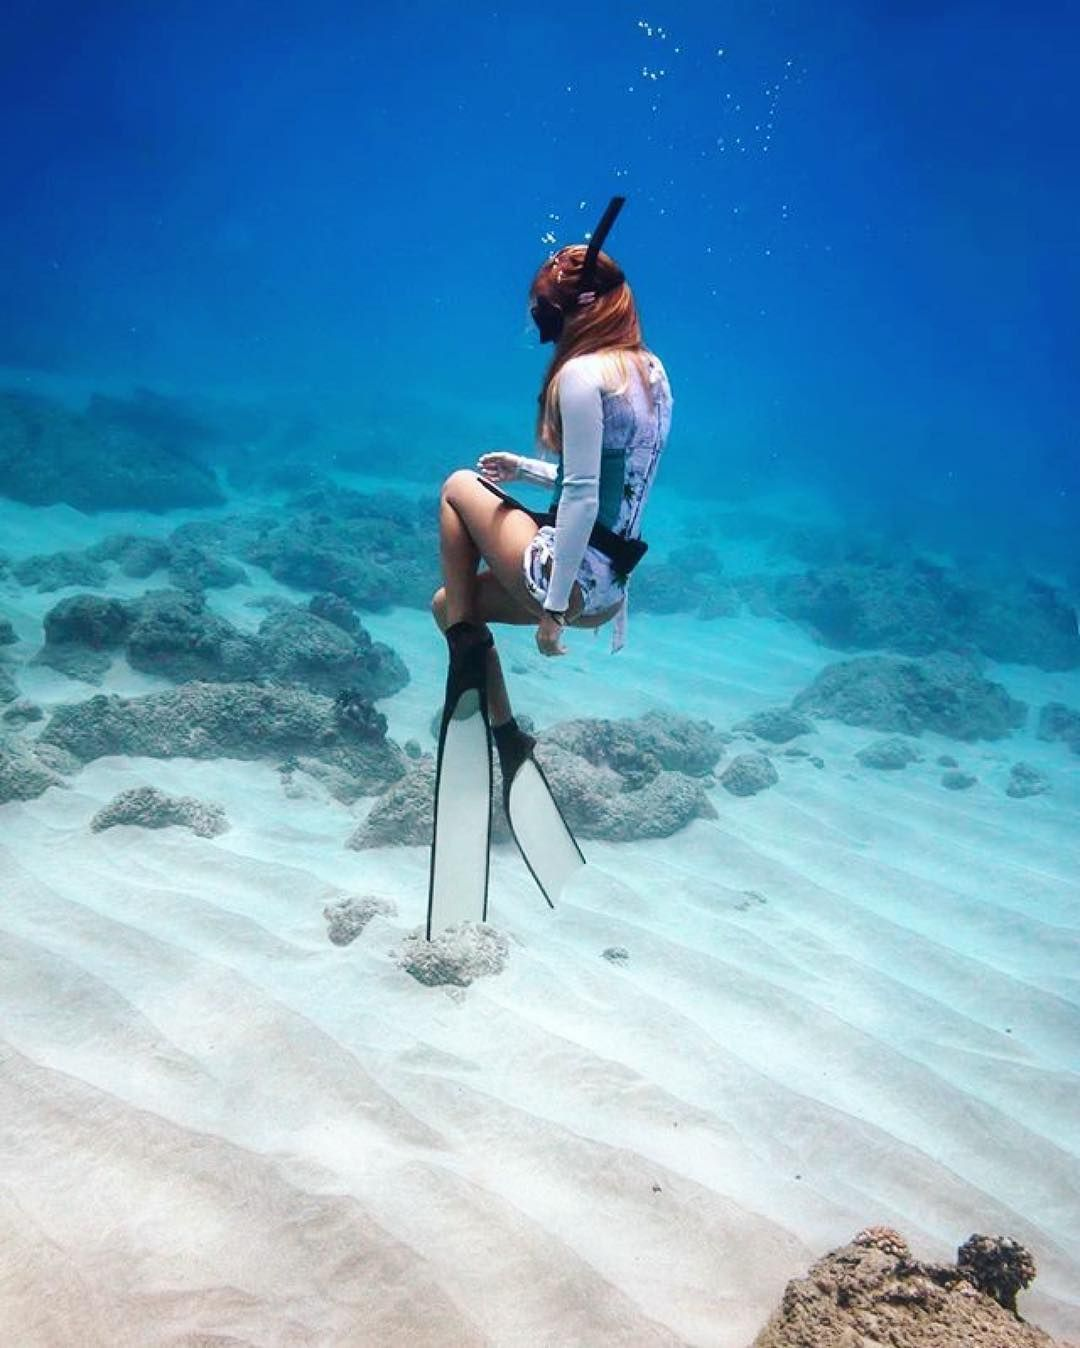 Pin On Best Freediving Pictures